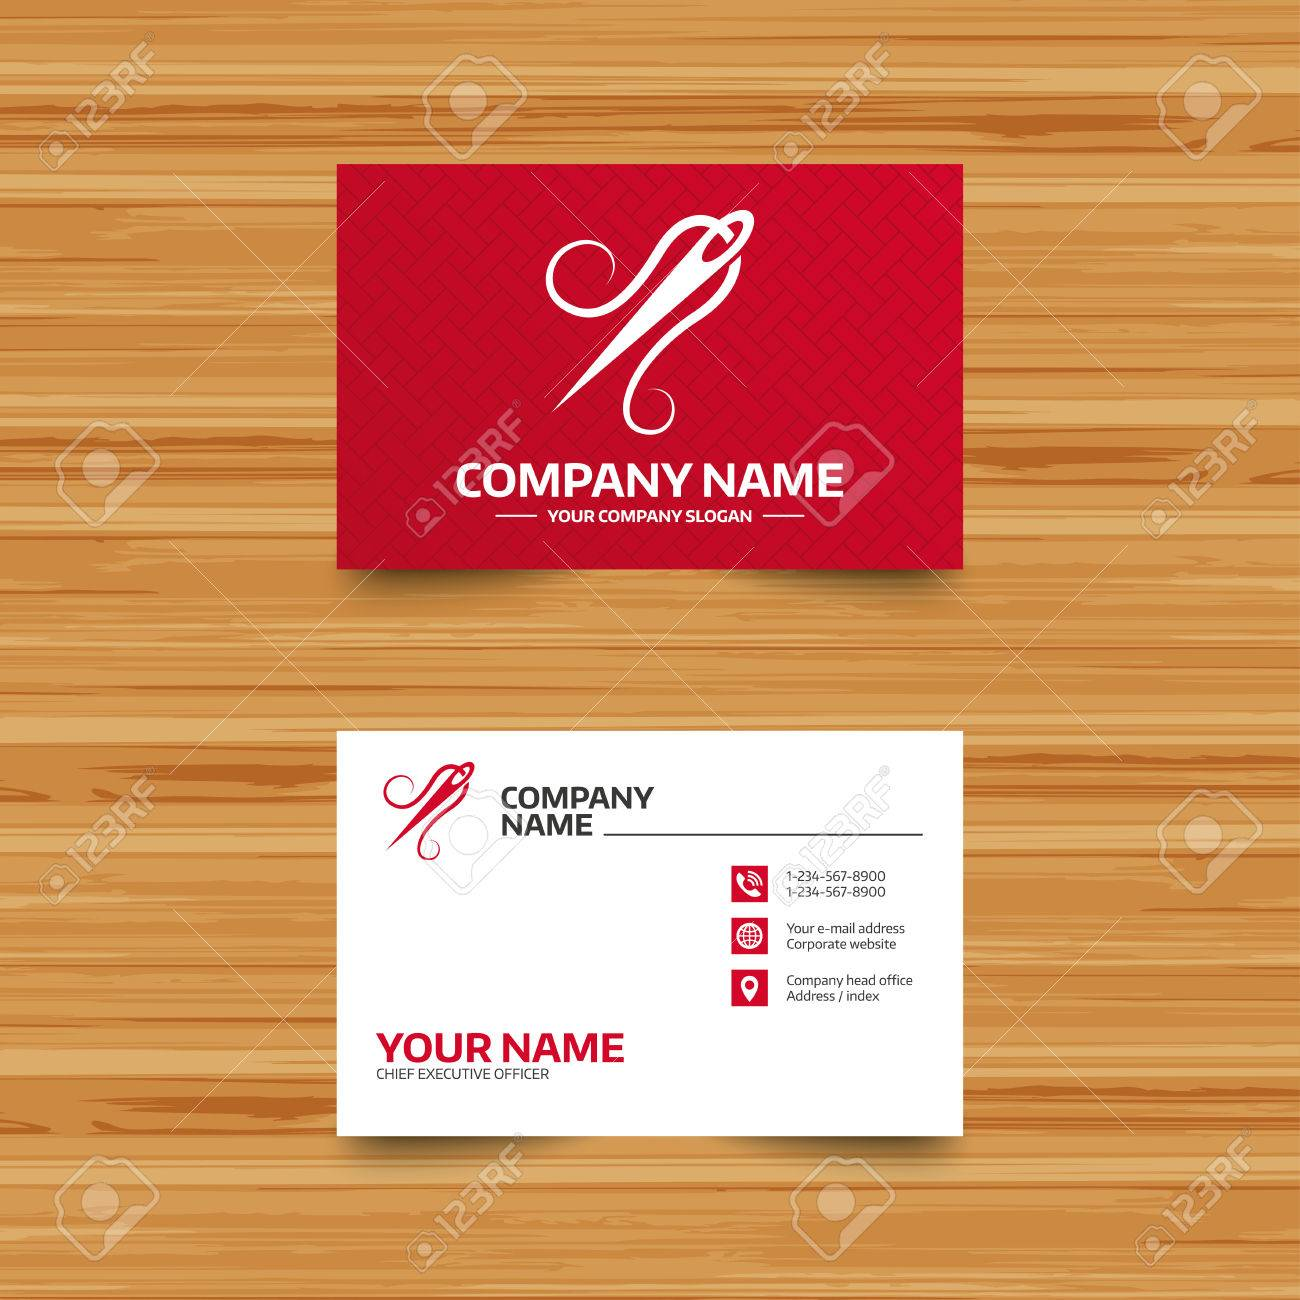 Business card template needle with thread icon tailor symbol business card template needle with thread icon tailor symbol textile sew up craft colourmoves Choice Image